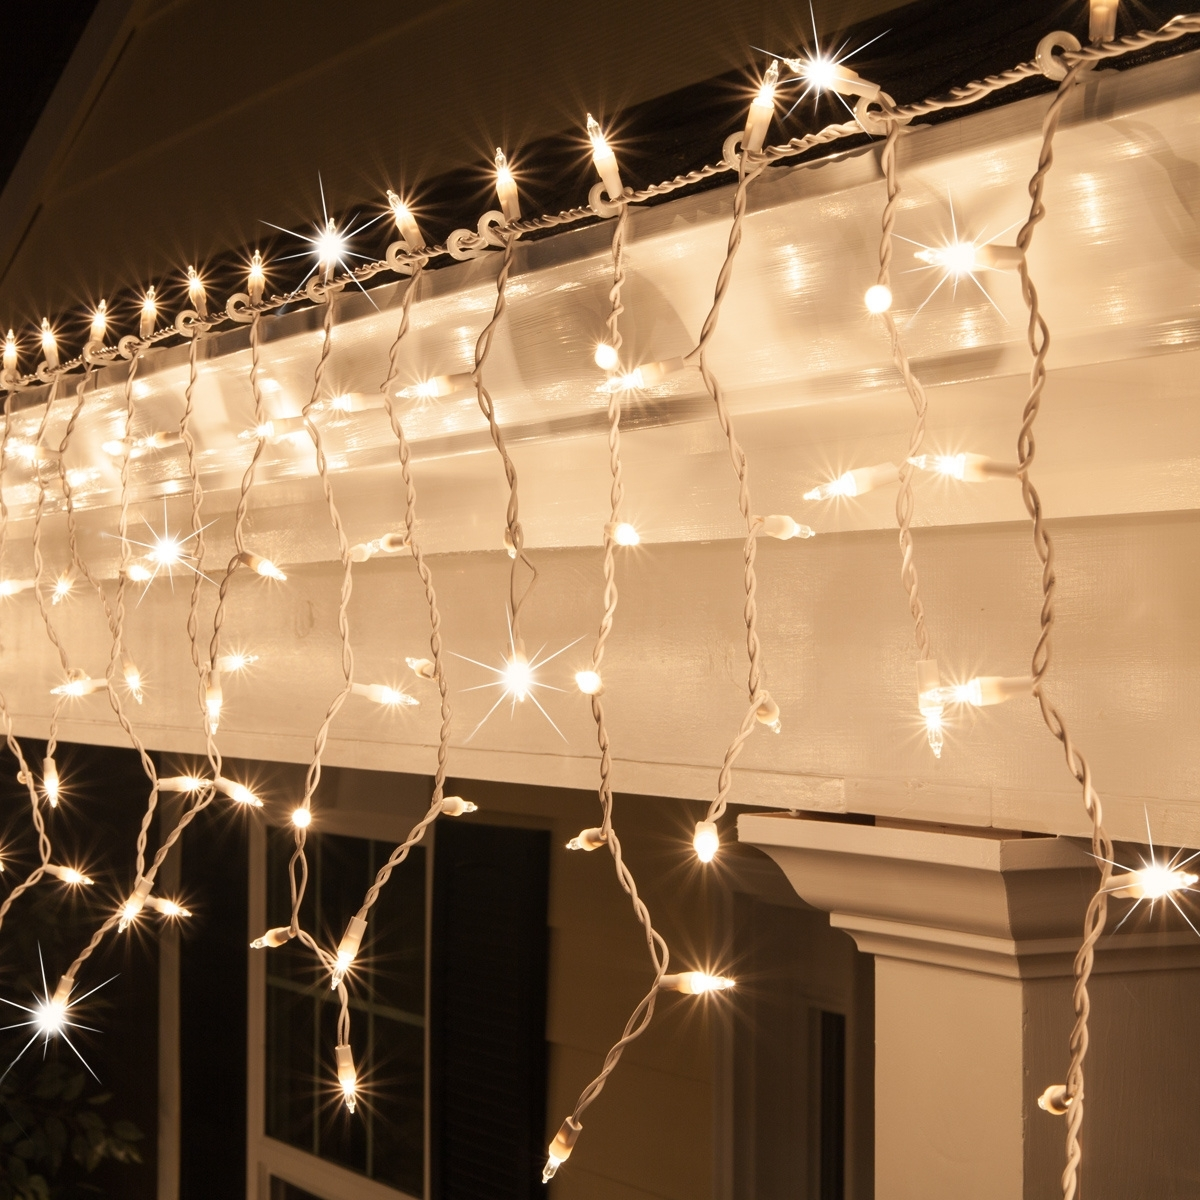 Fashionable Christmas Icicle Light – 150 Clear Twinkle Icicle Lights – White Wire In Hanging Outdoor Holiday Lights (View 18 of 20)